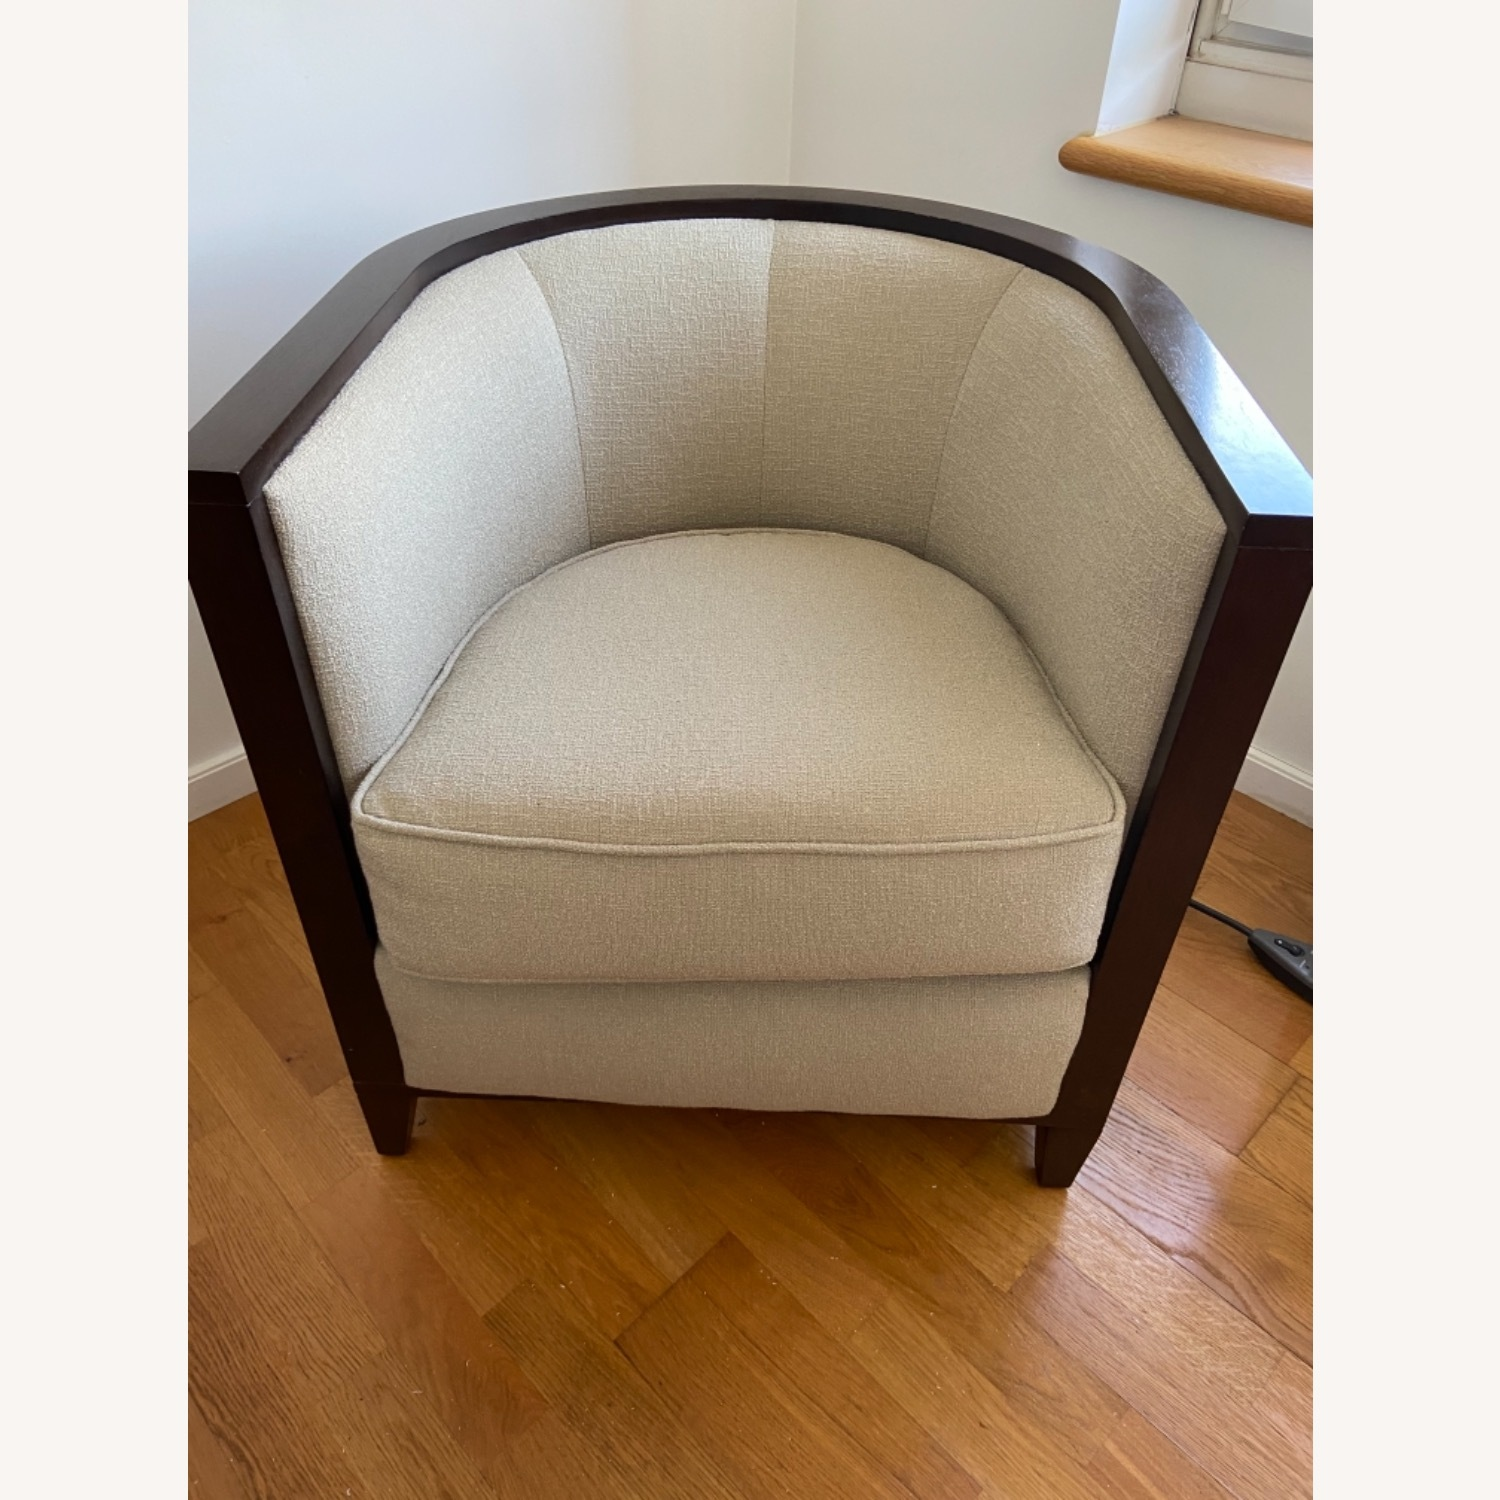 Better by Design Made USA Chair - image-0